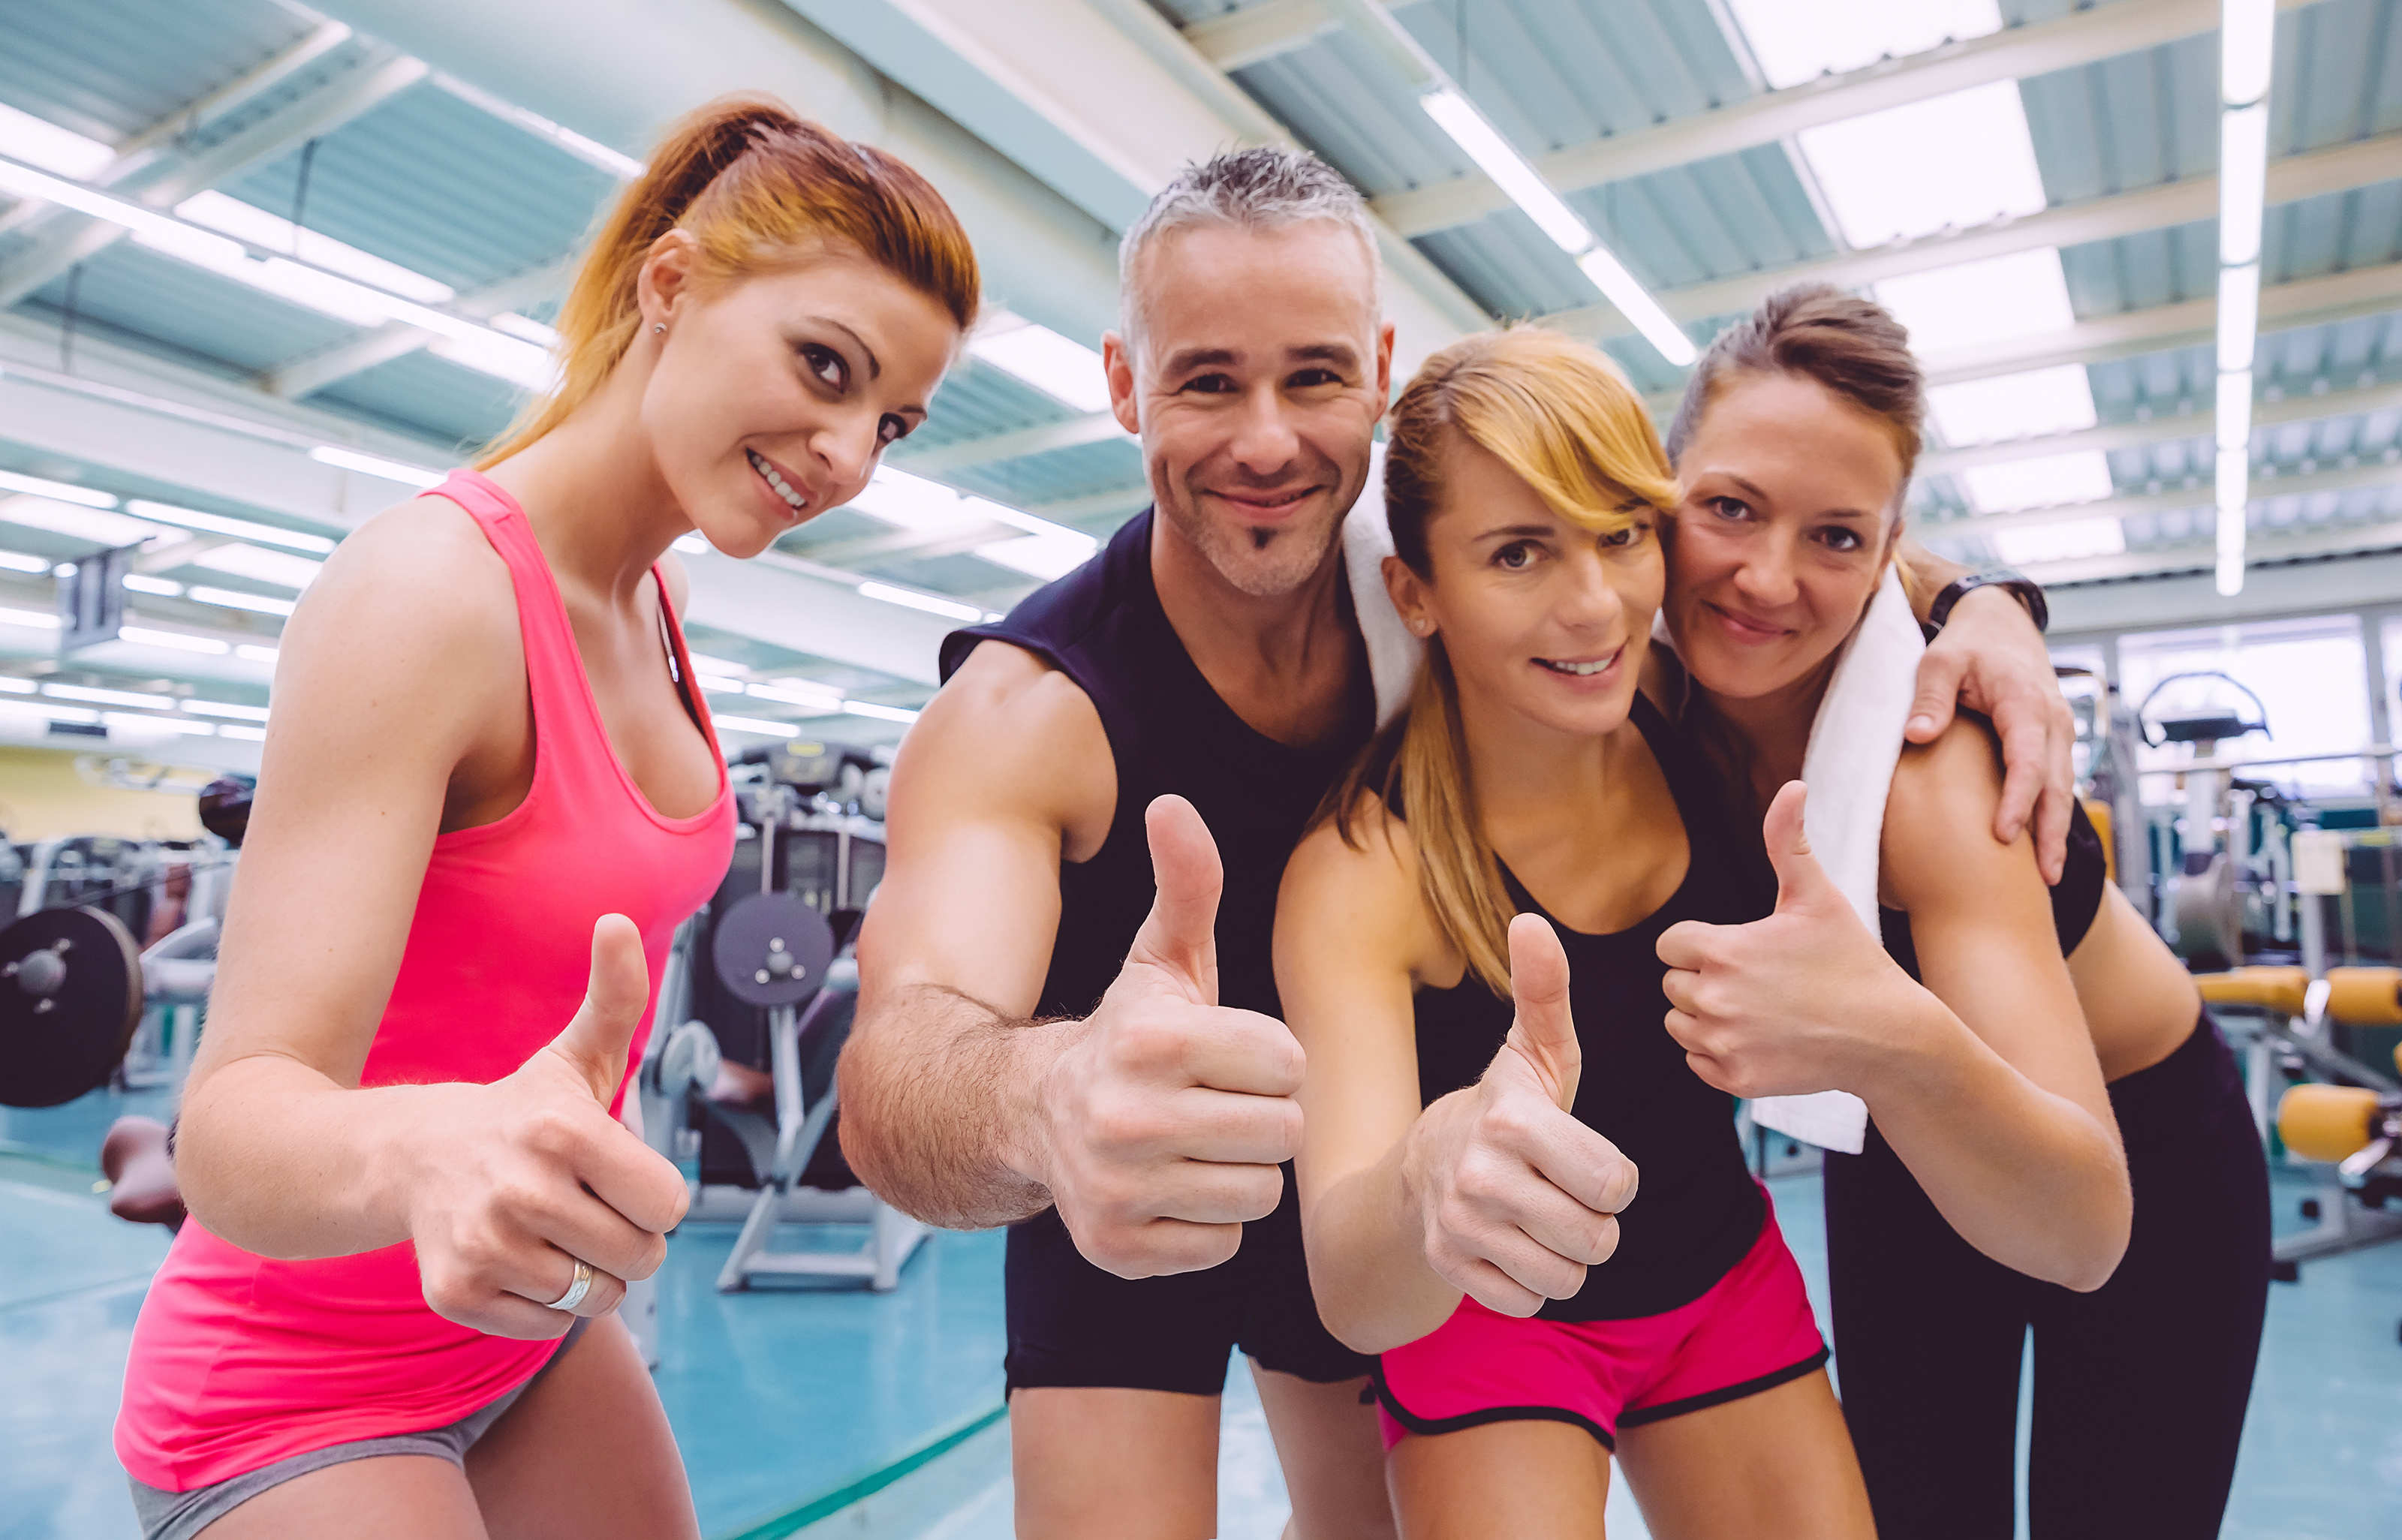 Group of friends with thumbs up smiling on a fitness center after hard training day. Selective focus on hands.